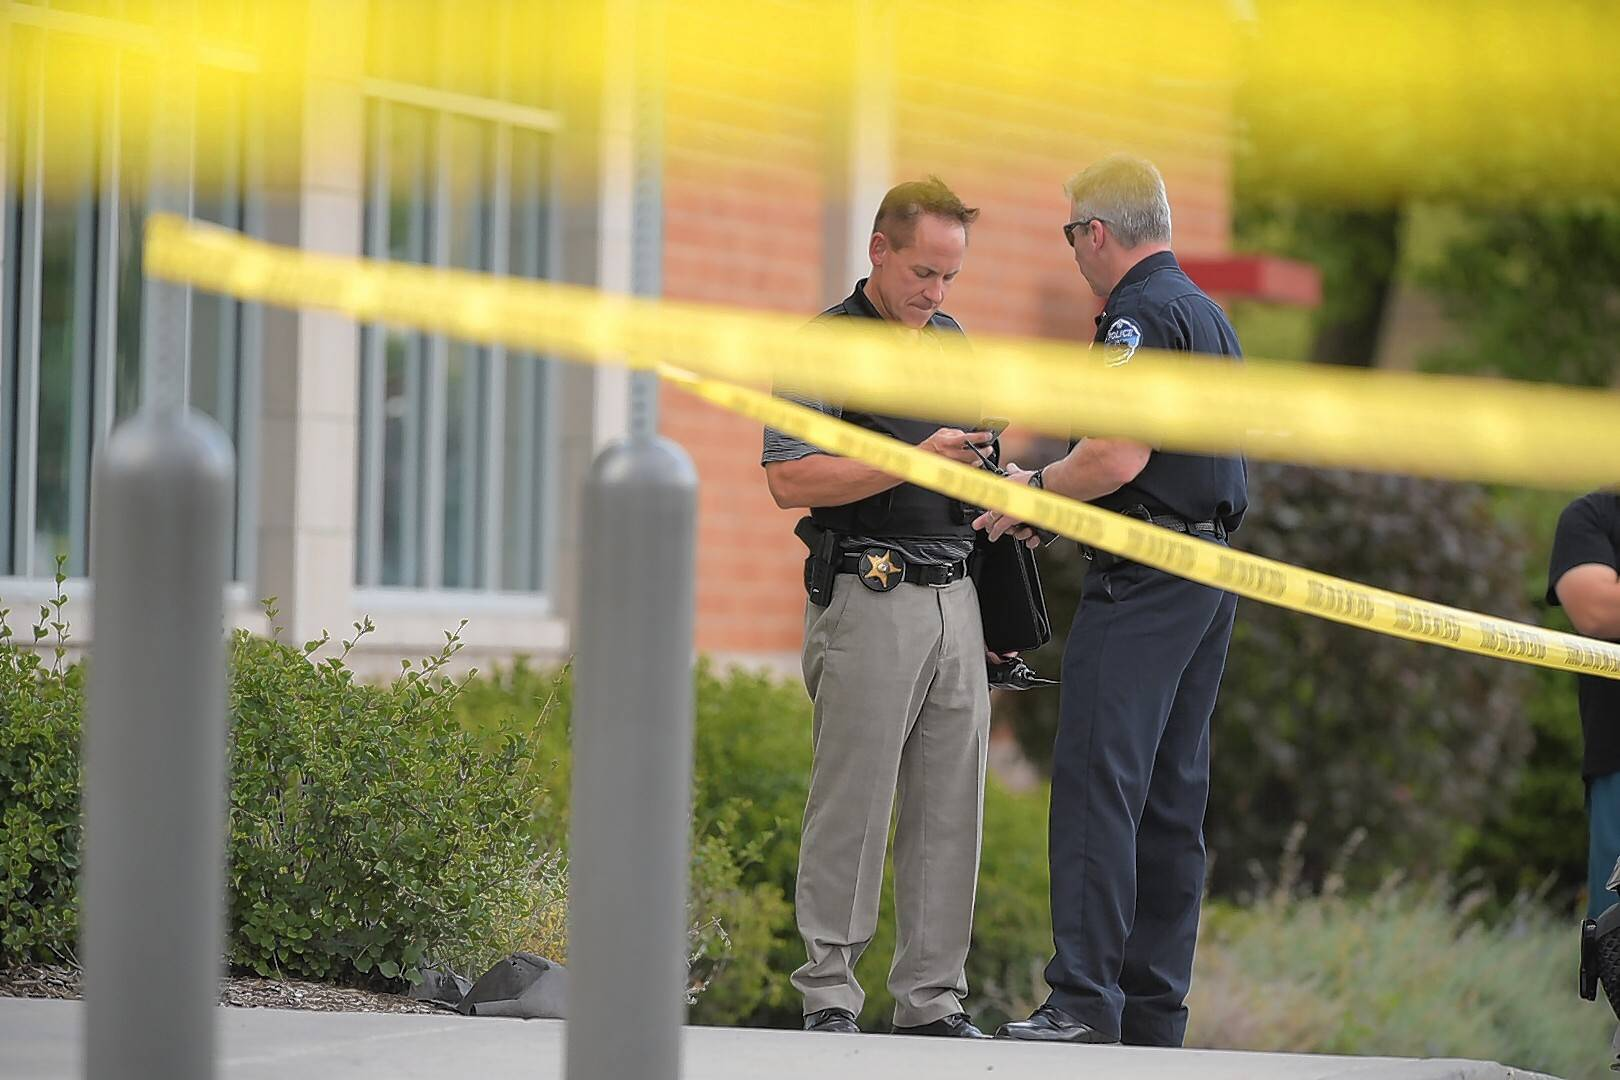 Investigators work the scene of a shooting Monday at Roselle and Wise roads in Schaumburg.